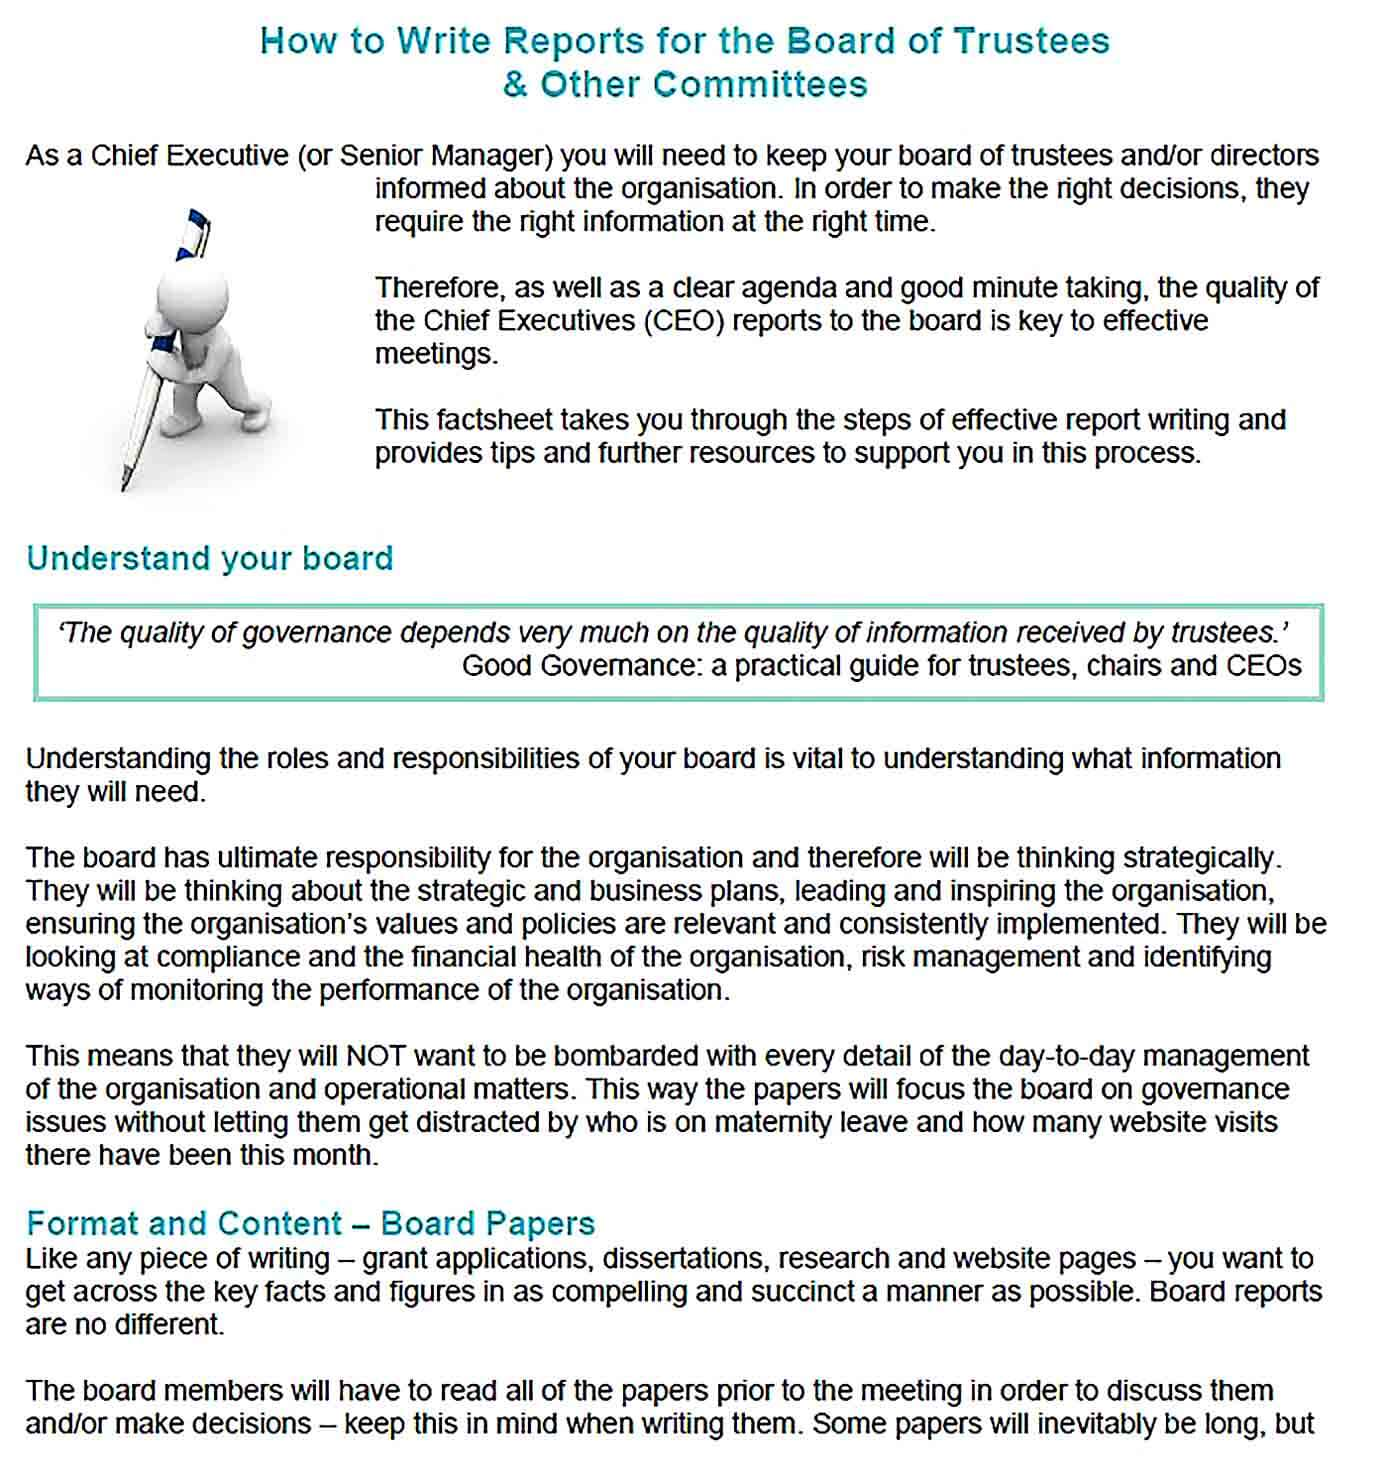 Sample Writing Reports for Board of Trustees Other Committees